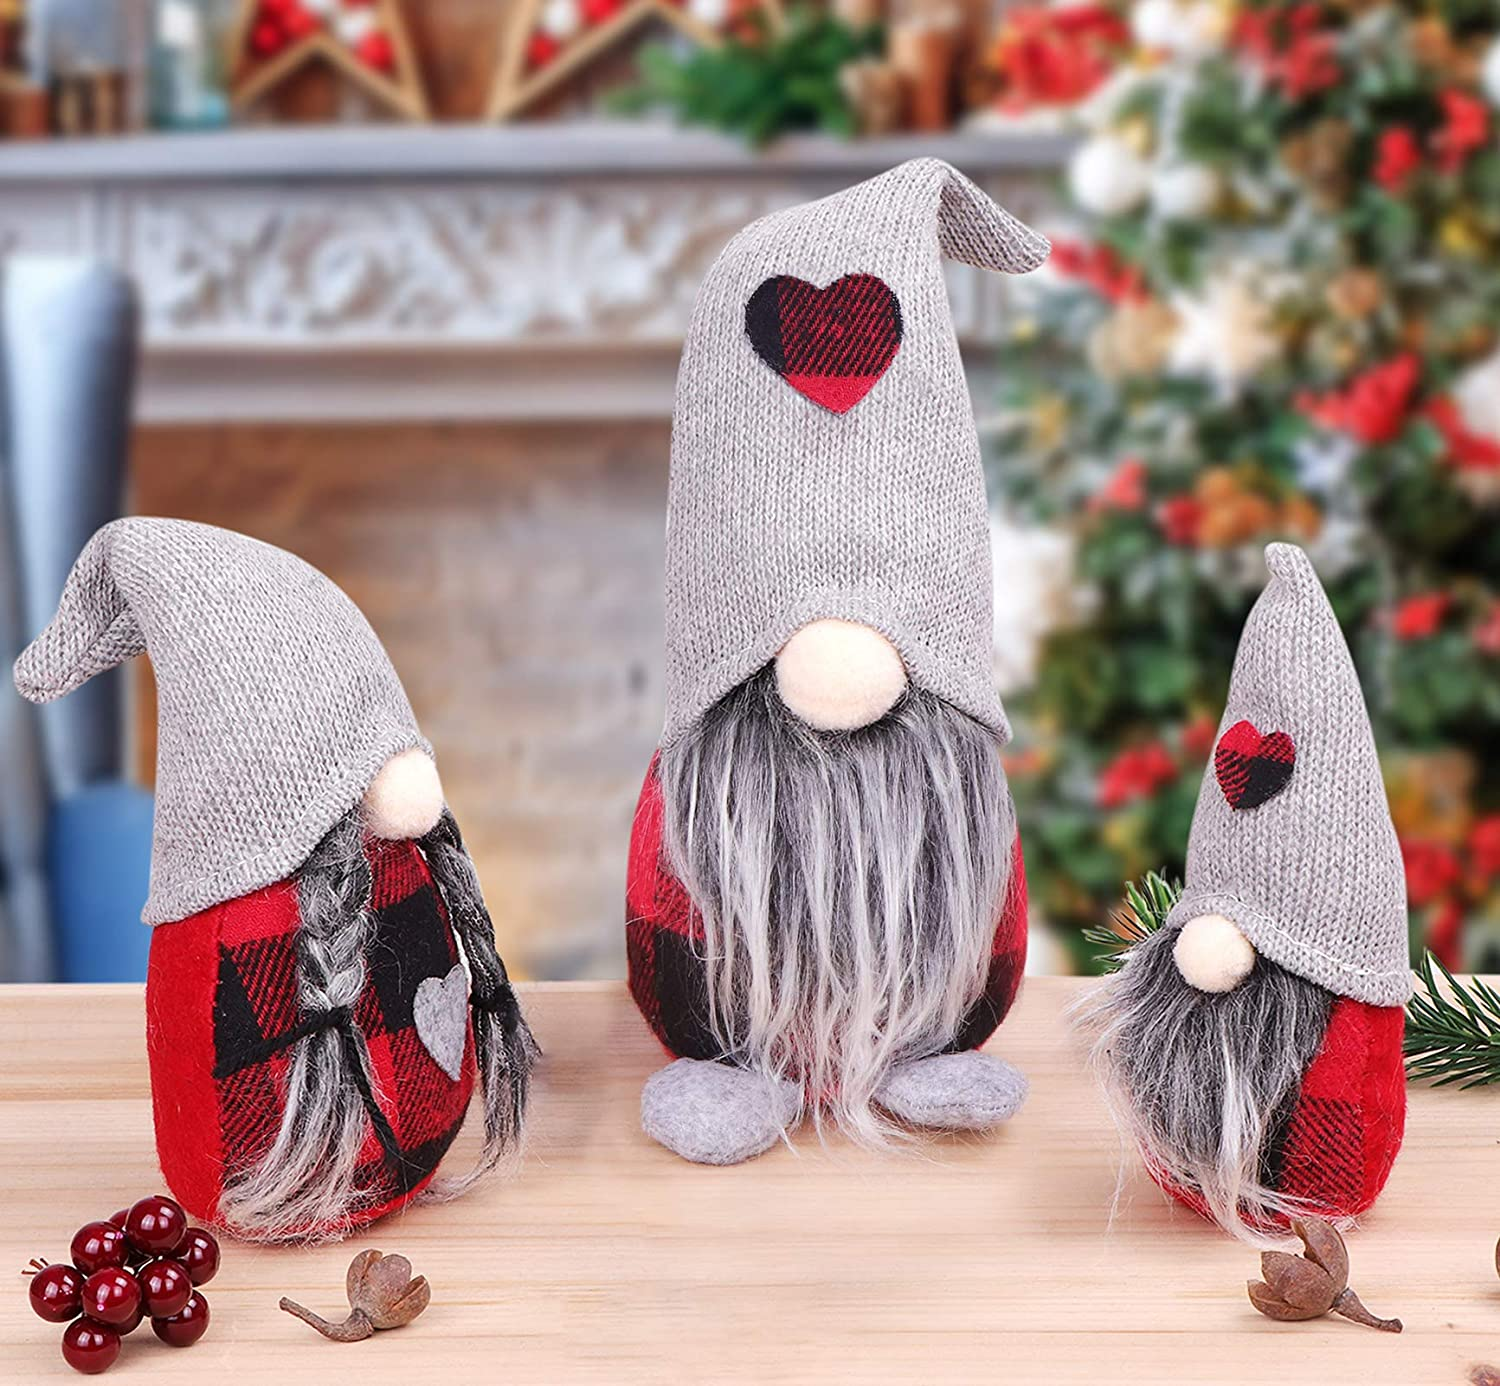 Gnome Christmas Decorations 3 Pack Christmas Holiday Gnomes Ornament Handmade Plush Swedish Red Buffalo Plaid Tomte Elf Christmas Home Indoor Decorations